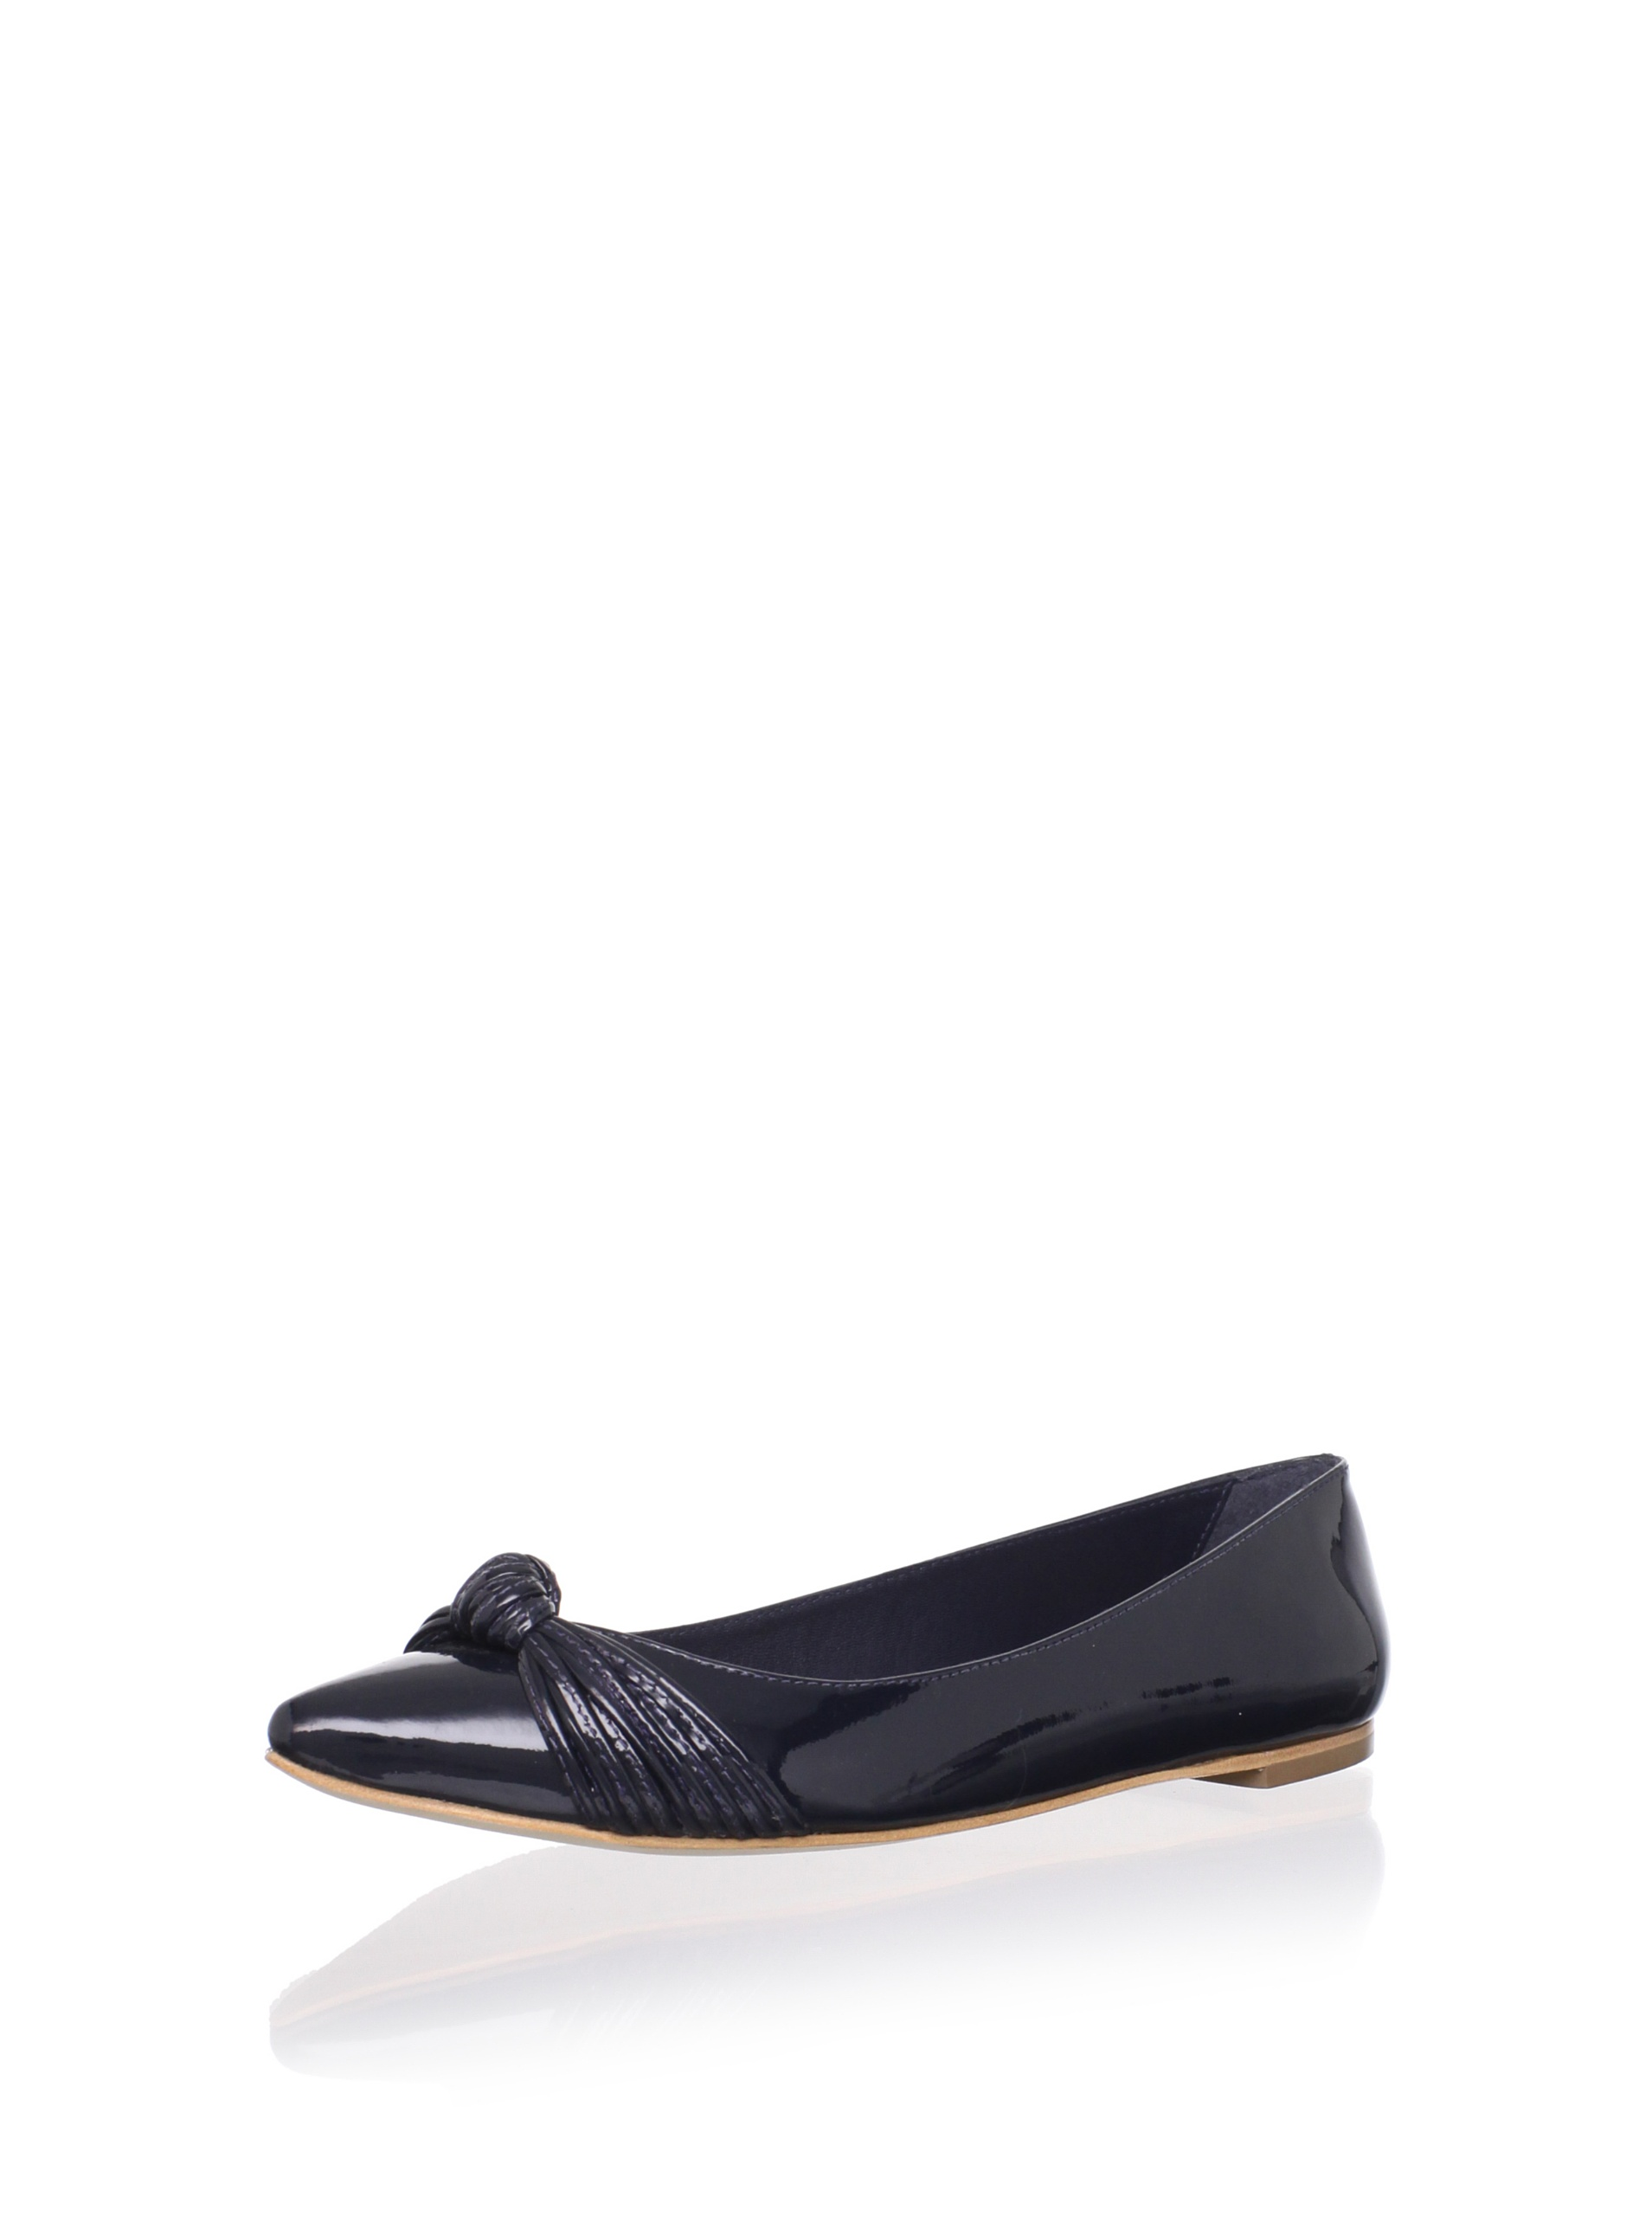 Loeffler Randall Women's Willow Flat with Mignon Knot (Navy)